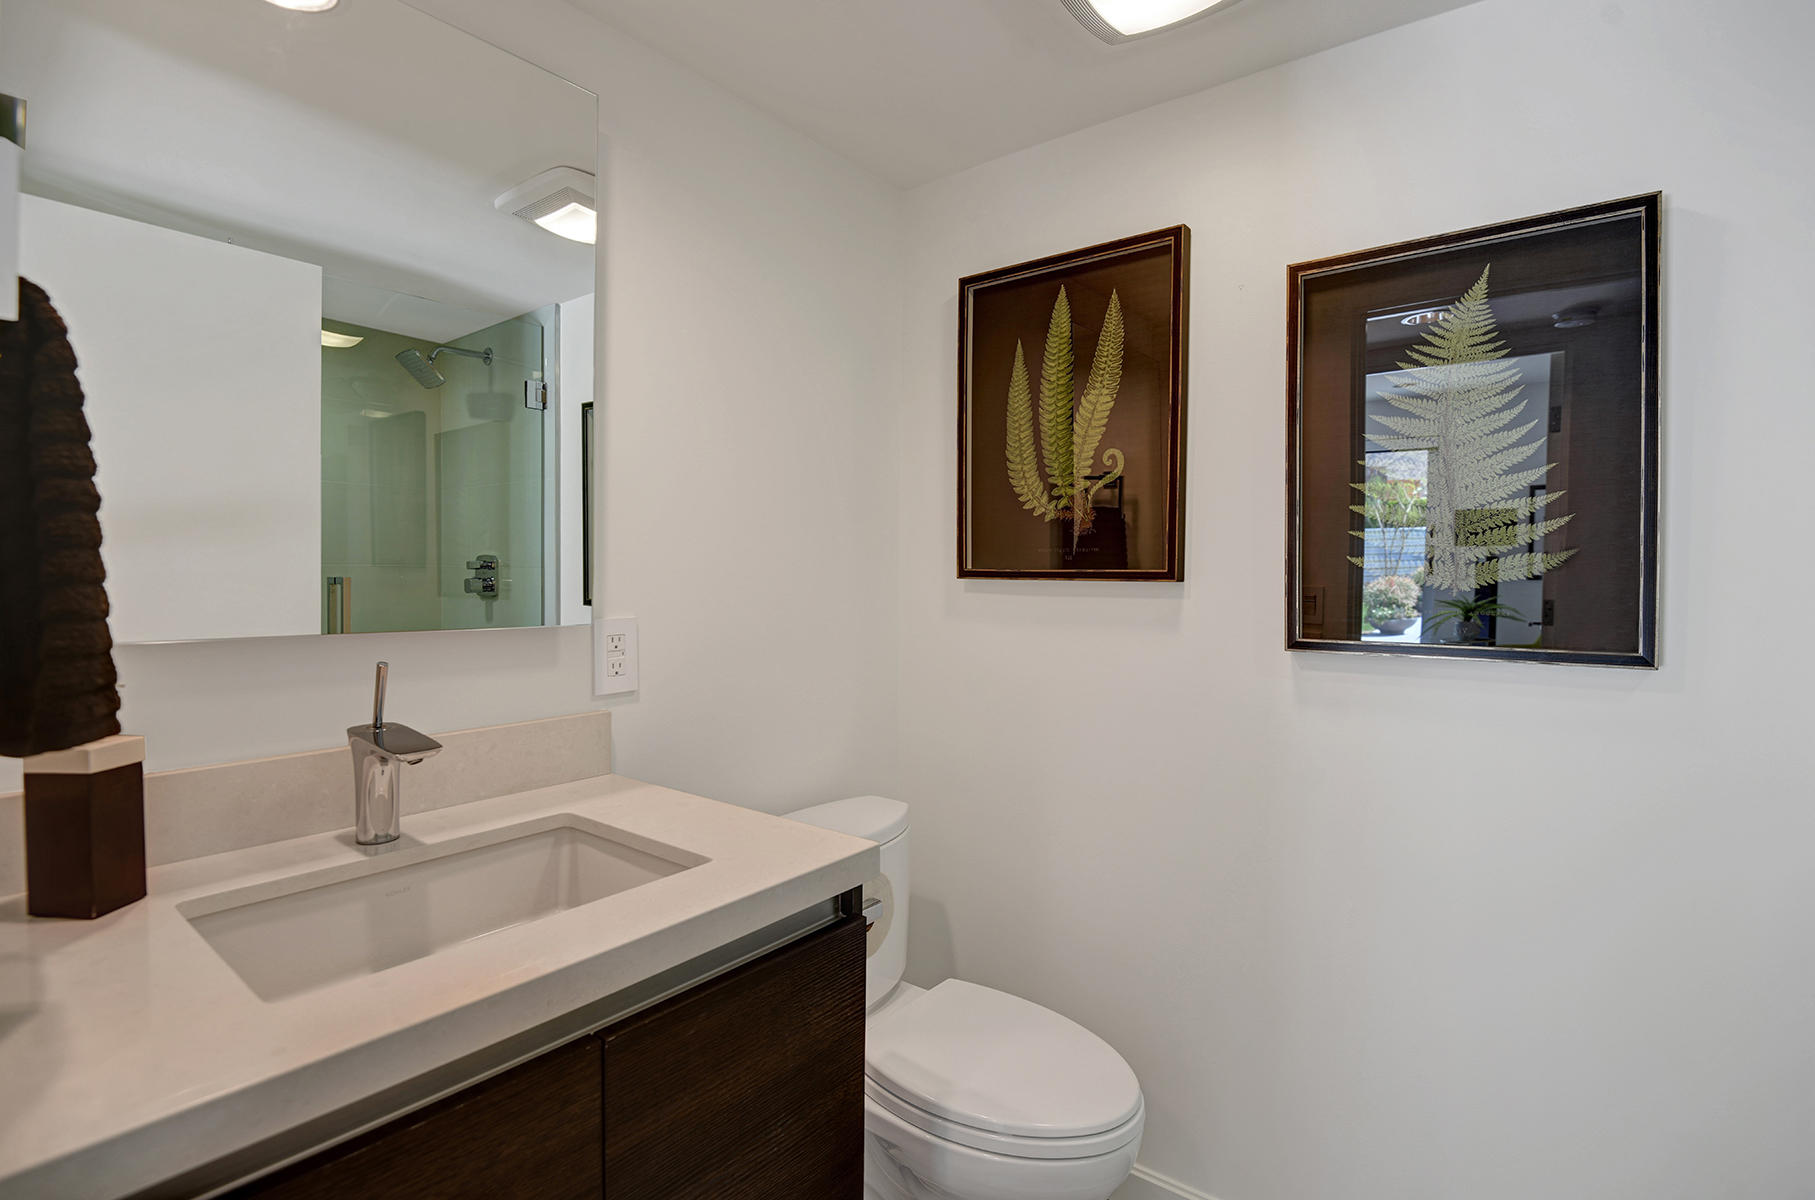 471 Dion Drive, Palm Springs, California 92262, 3 Bedrooms Bedrooms, ,3 BathroomsBathrooms,Residential,For Sale,471 Dion Drive,219045470